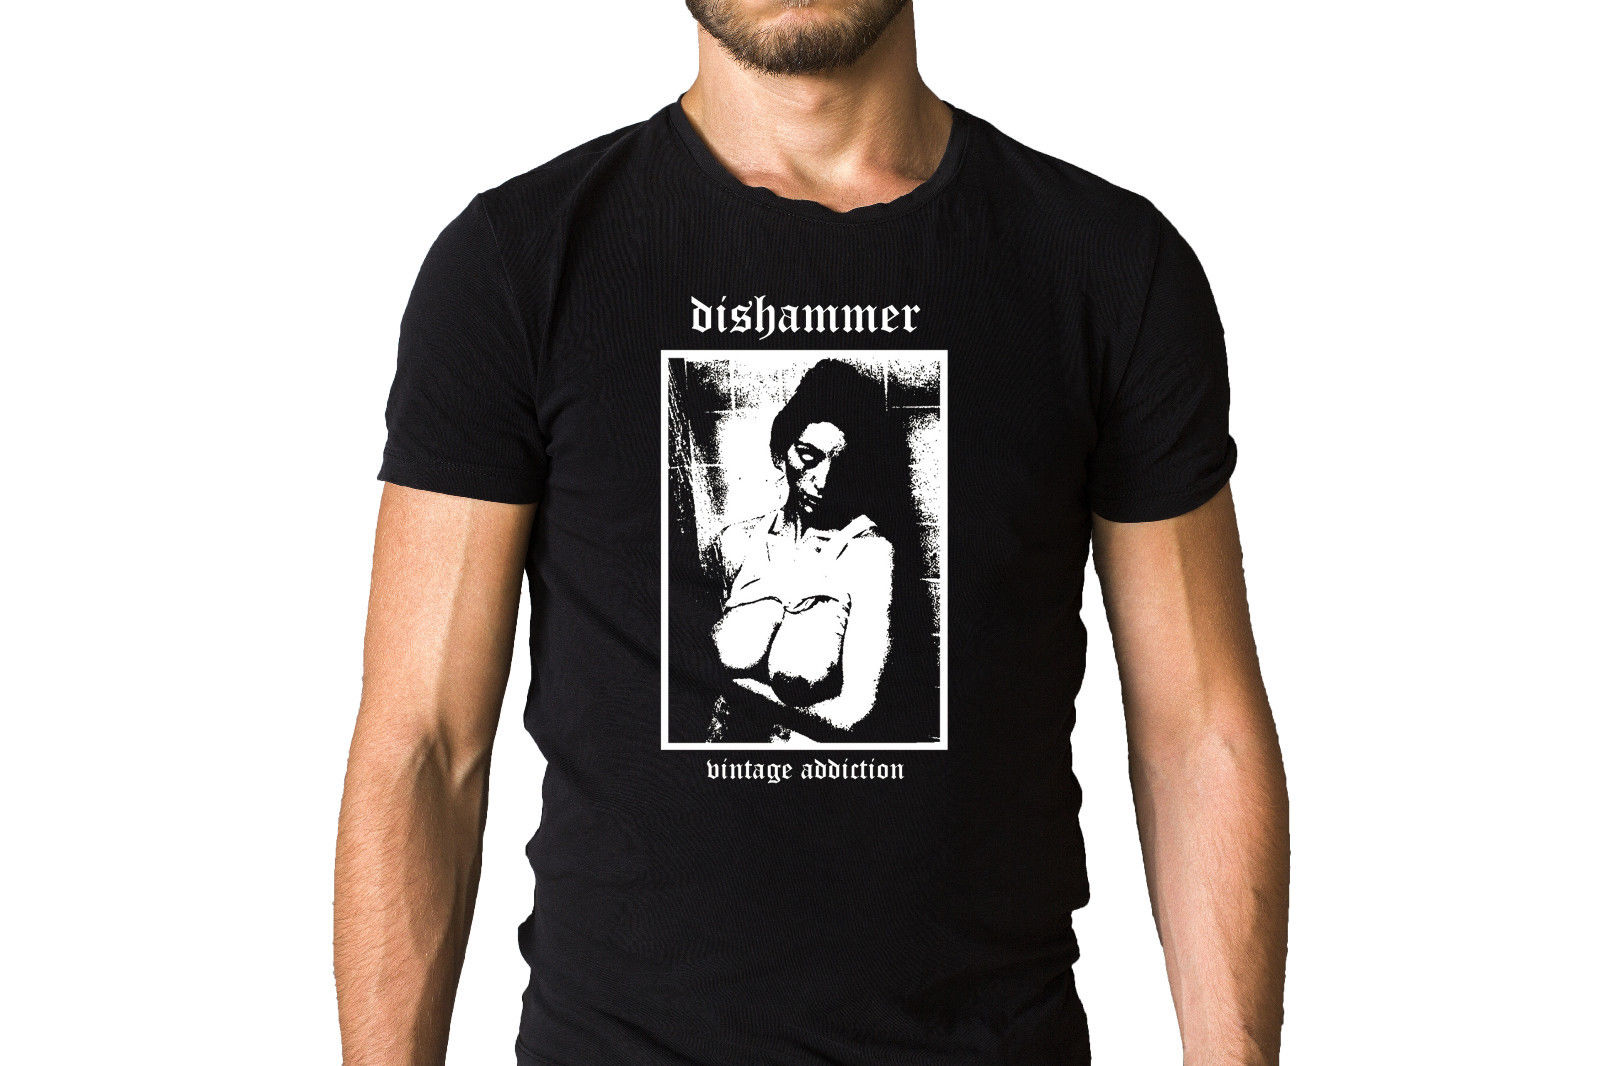 Dishammer Vintage Addiction 2008 Album Cover T-Shirt Shirts Summer Short Sleeve Novelty  ...